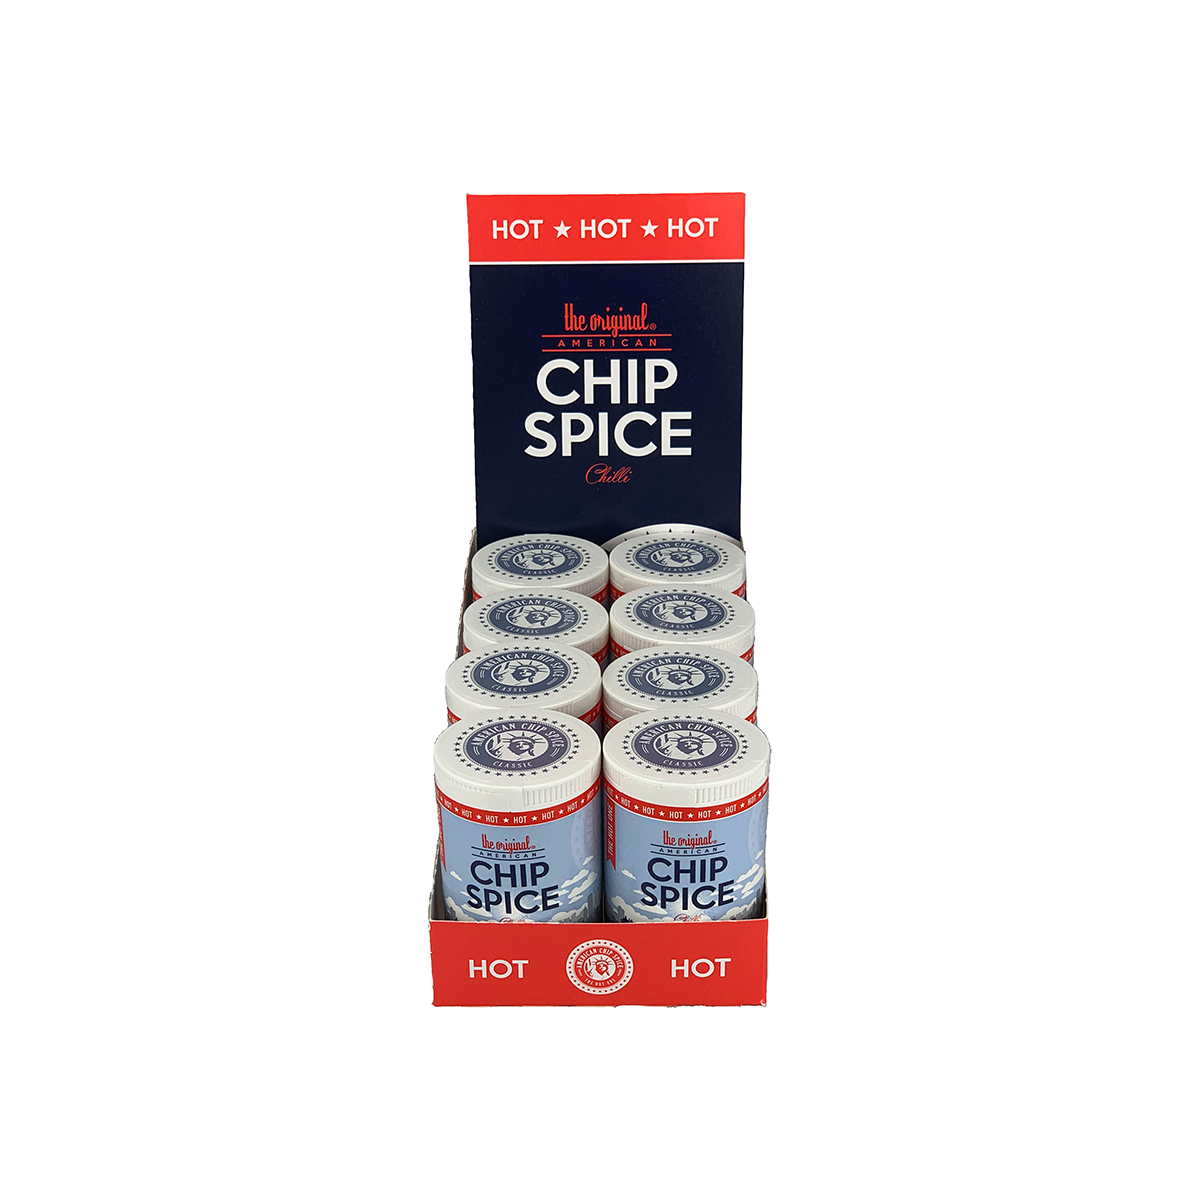 American Chip Spice (Hot) Retail Pack (8 x 85g)